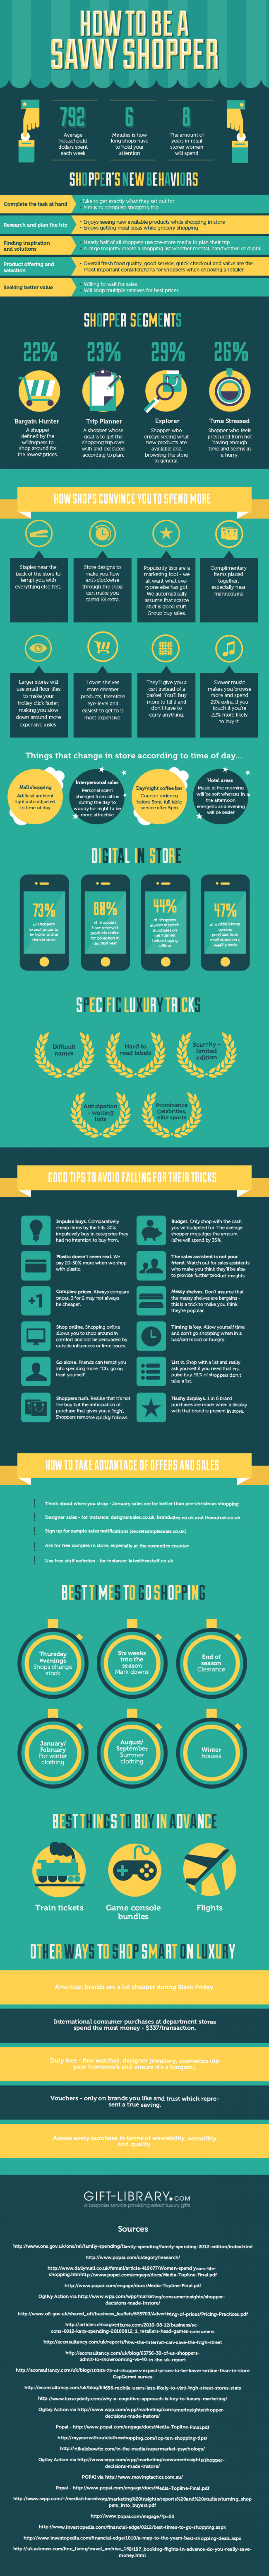 How To Be A Savvy Shopper Infographic